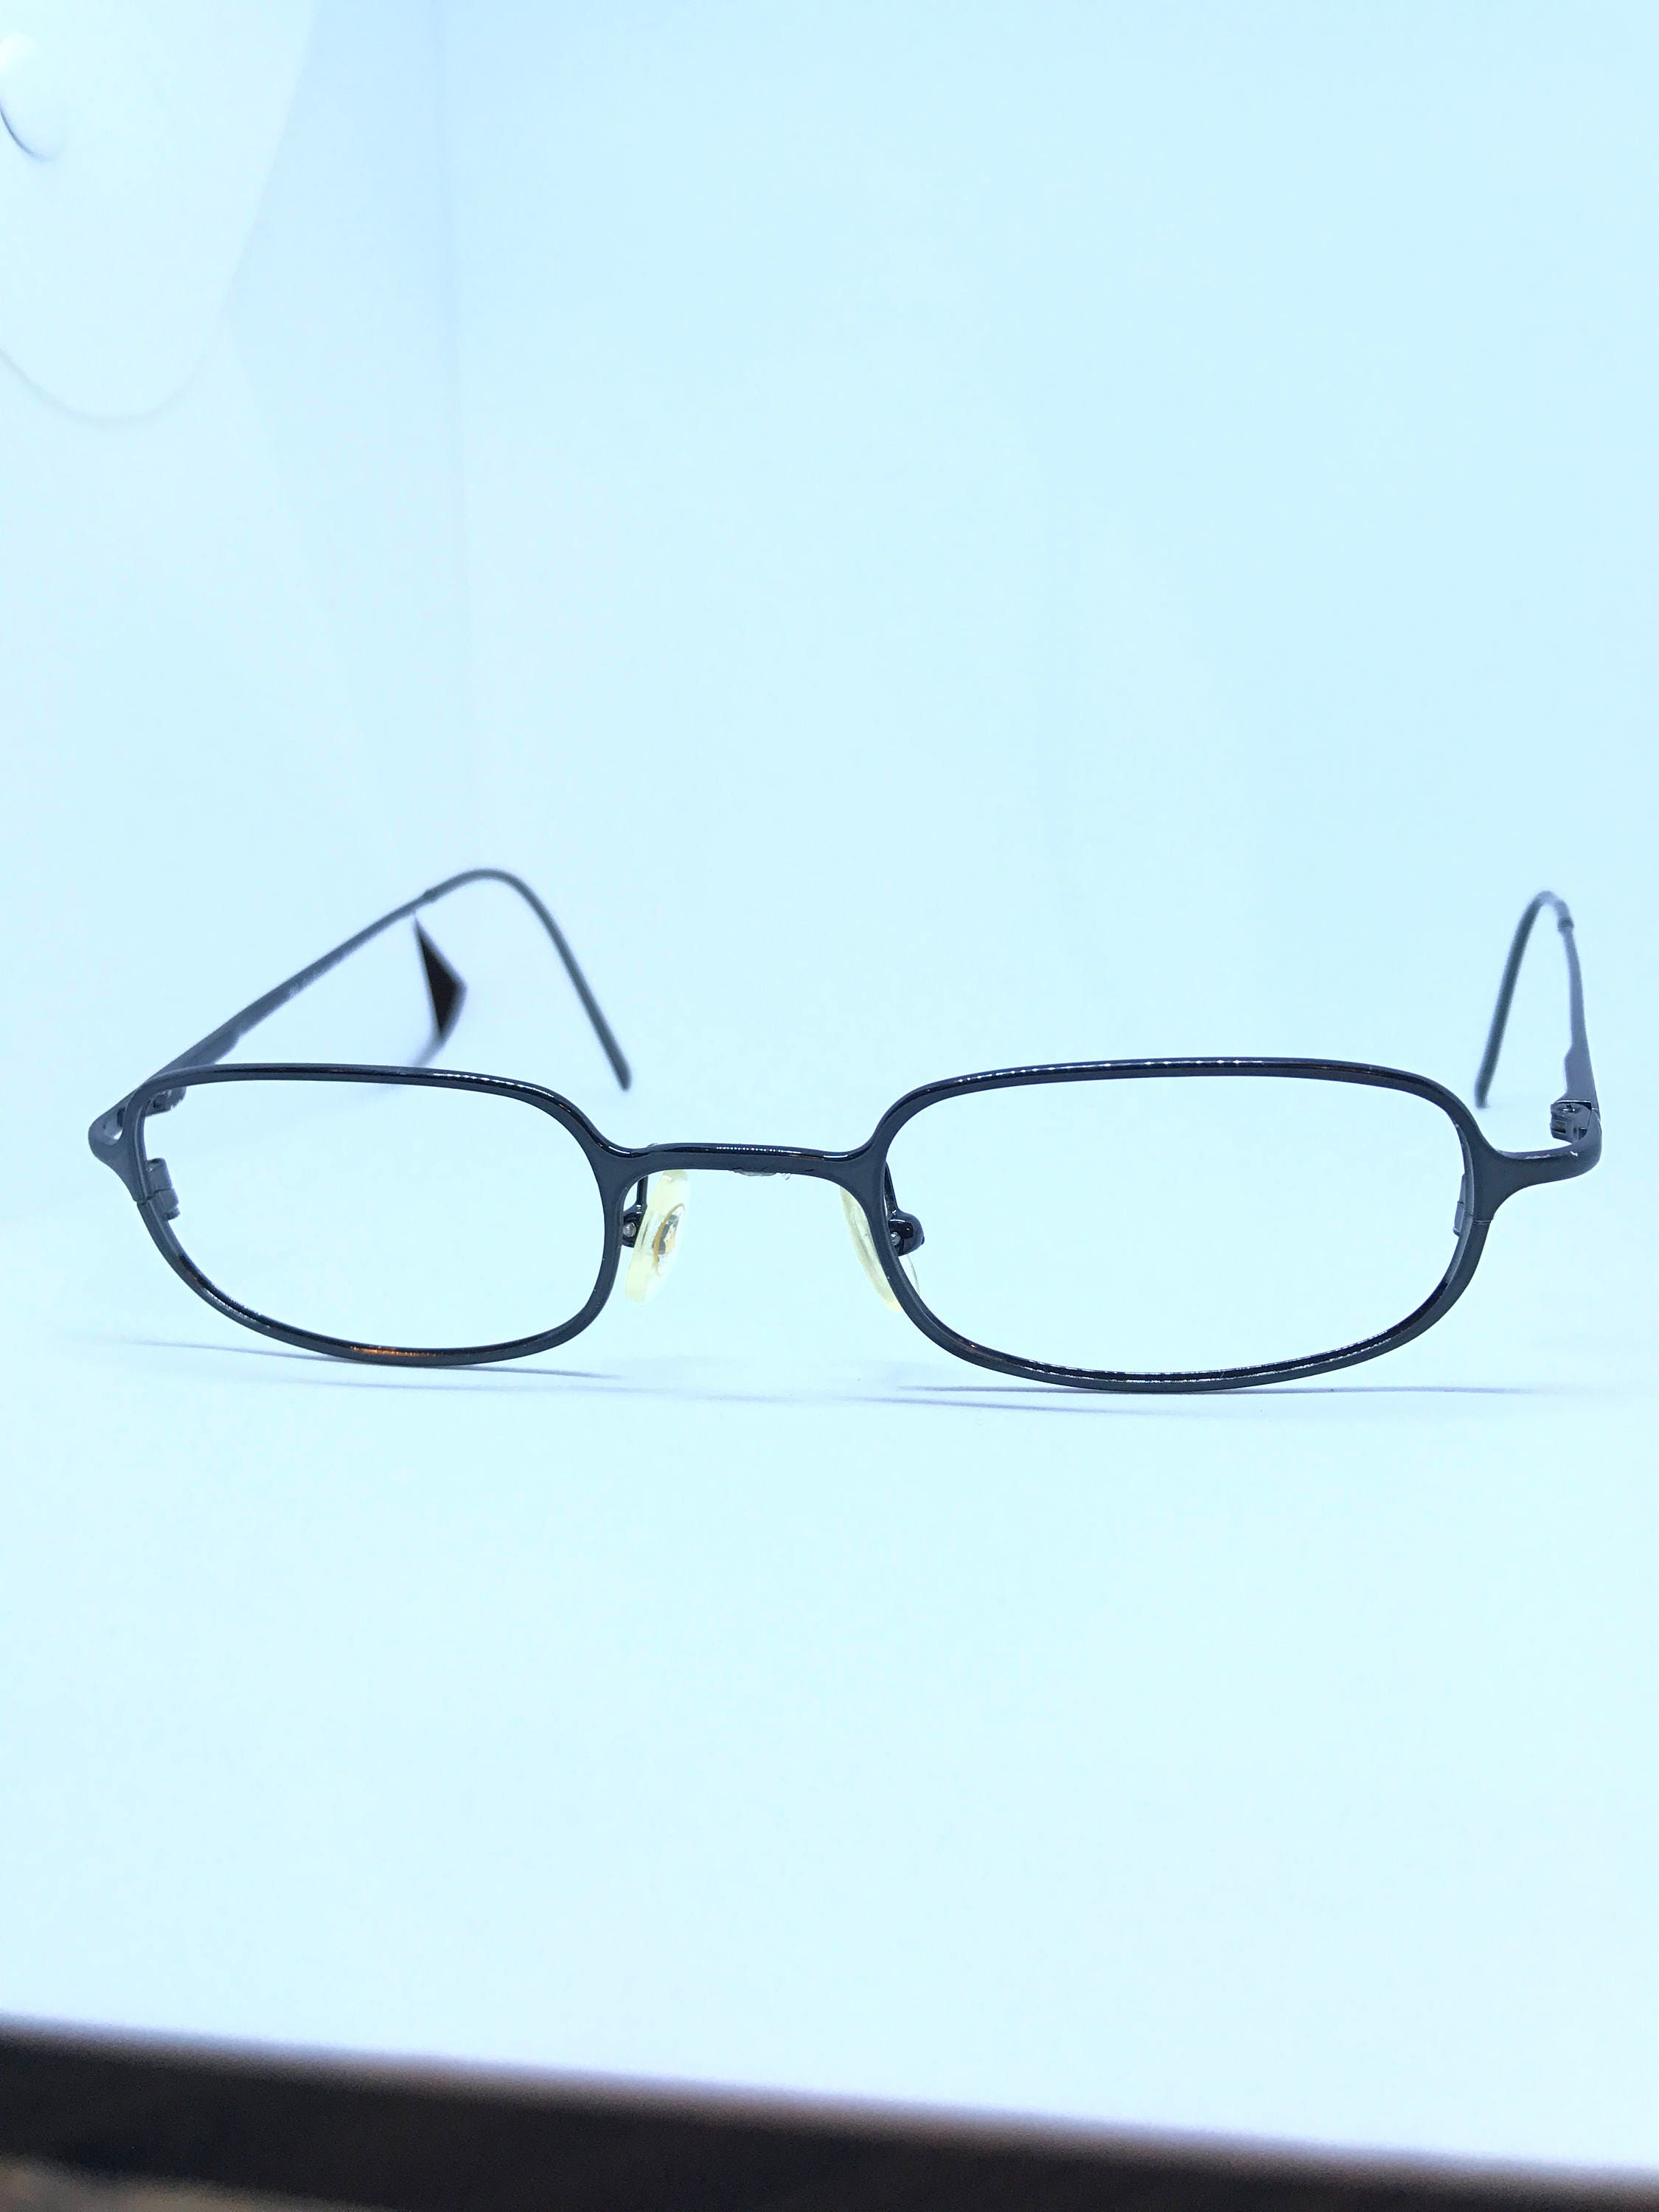 59783a55e3 Vintage Polo Eyeglass Frame - Made in Italy - Vintage Polo Style - Polo  Ralph Lauren